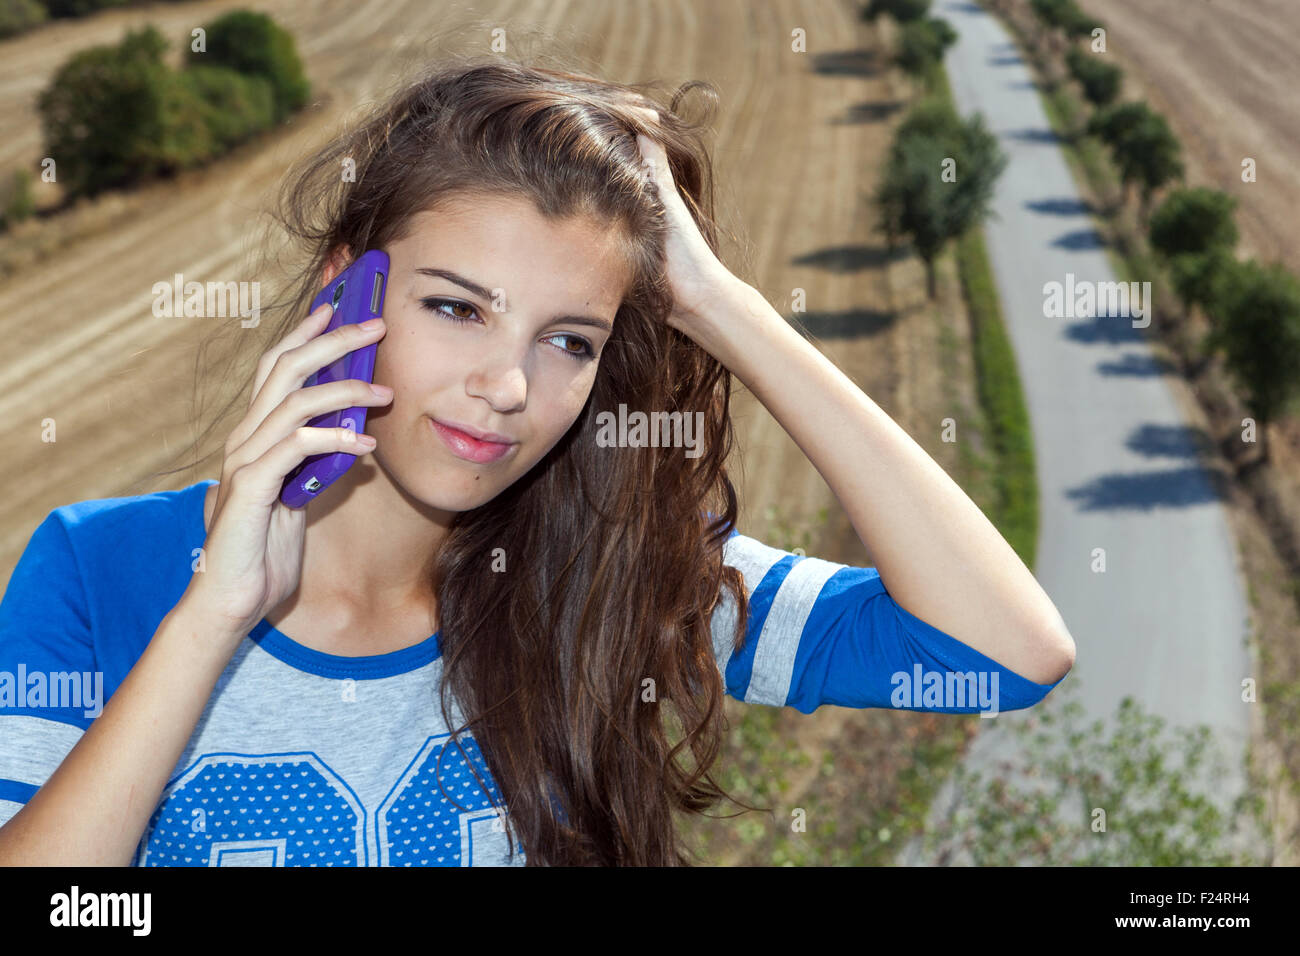 Adolescent girl talking on mobile phone Photo Stock